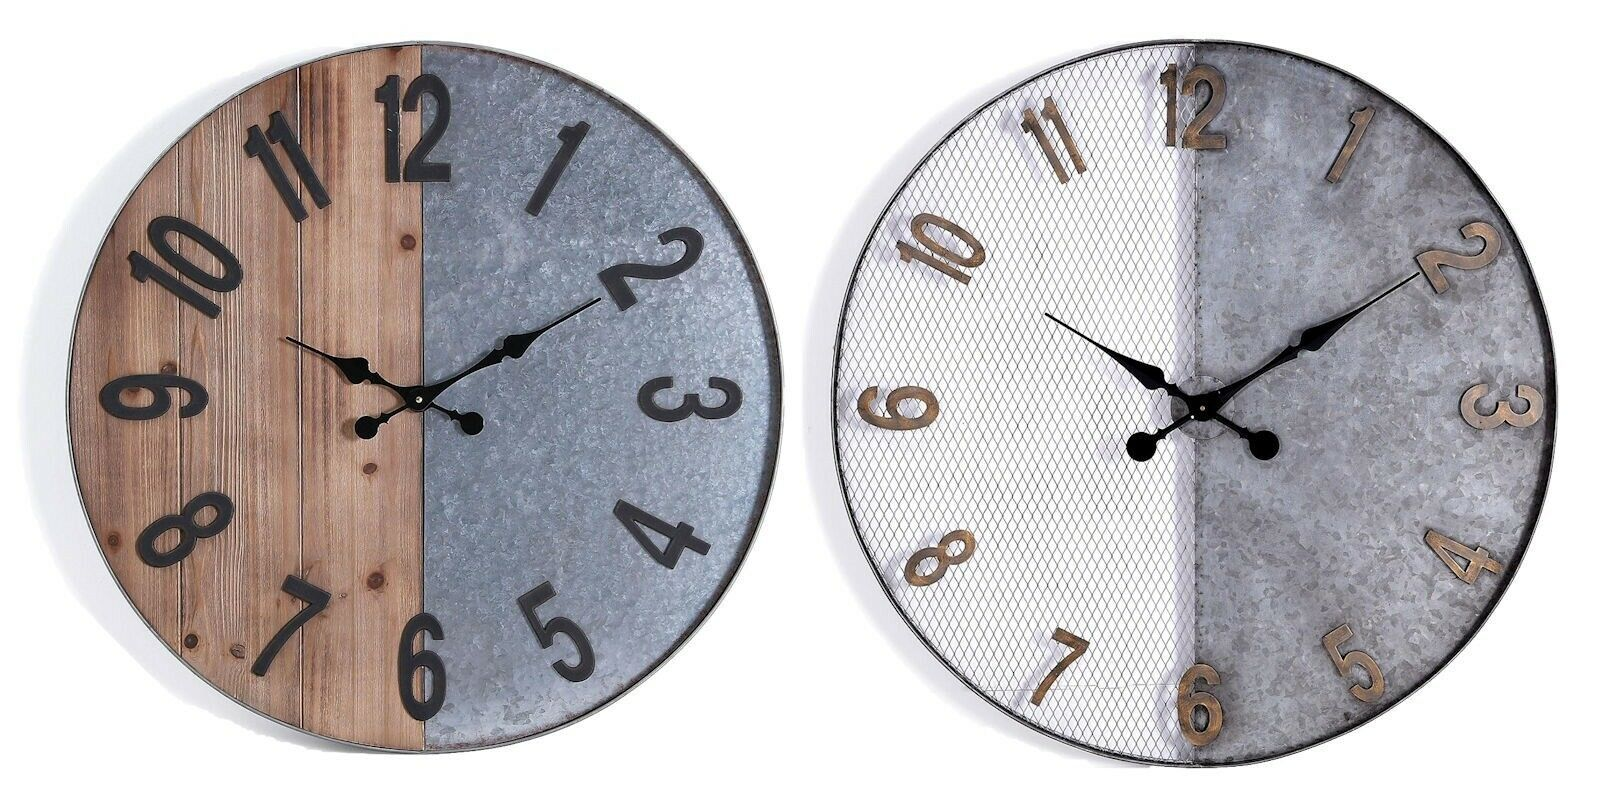 Oversized Wall Clock Round 36 Mesh Metal 28 Half Wood Wall Sculpture Wood Clock Ideas Of Wood Clock Woodclock Cl Oversized Wall Clock Wood Clocks Clock